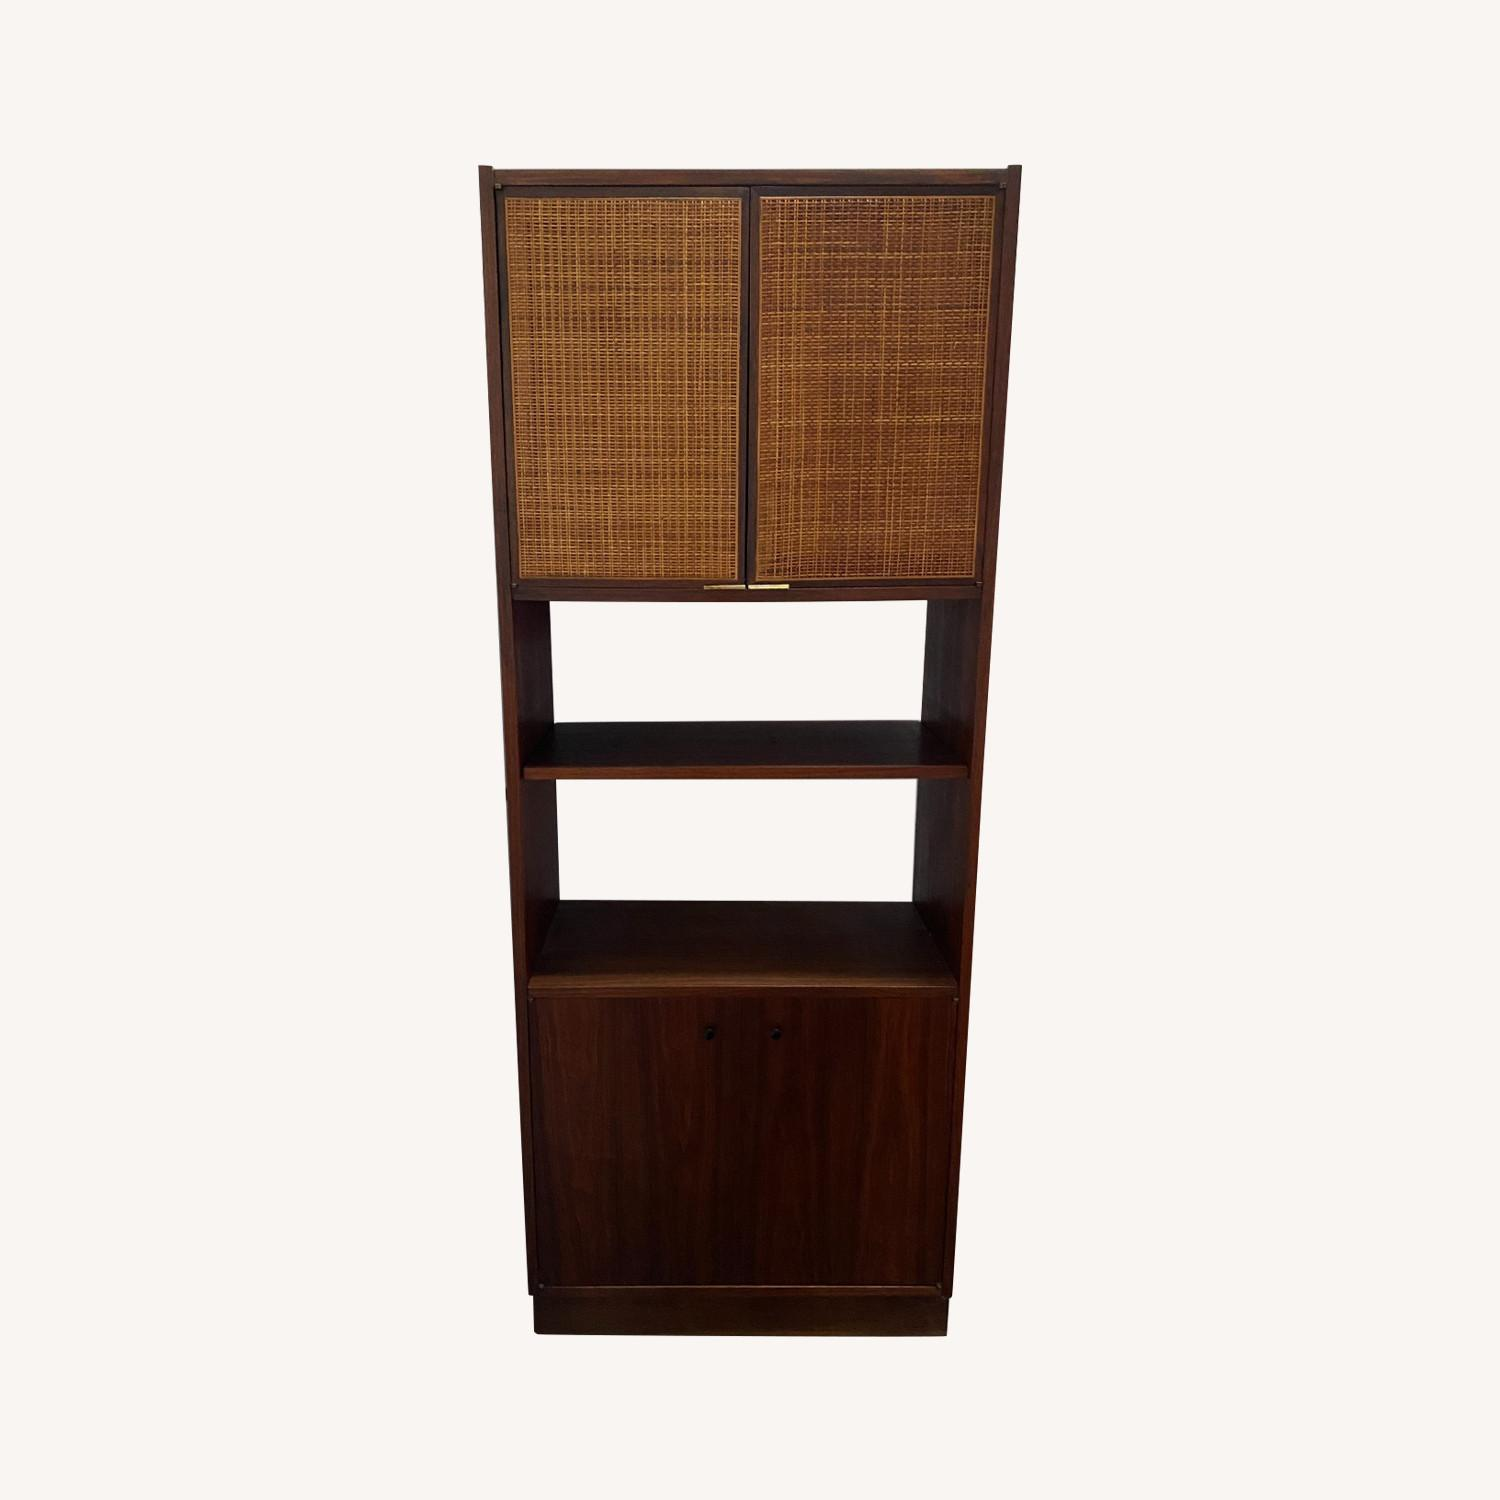 Midcentury Tall Media Cabinet with Cane Doors - image-0